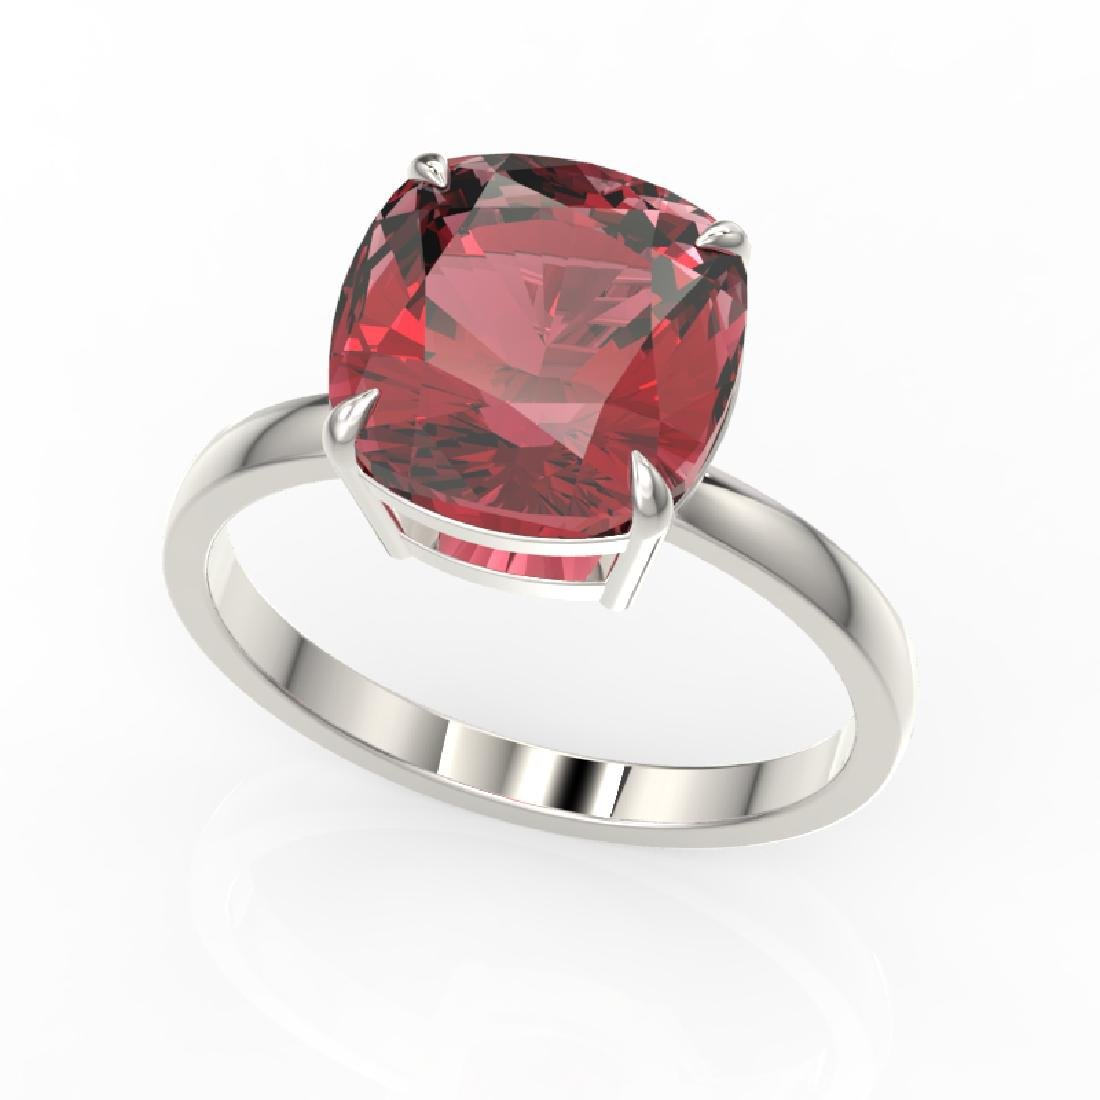 6 CTW Cushion Cut Pink Tourmaline Inspired Solitaire - 2